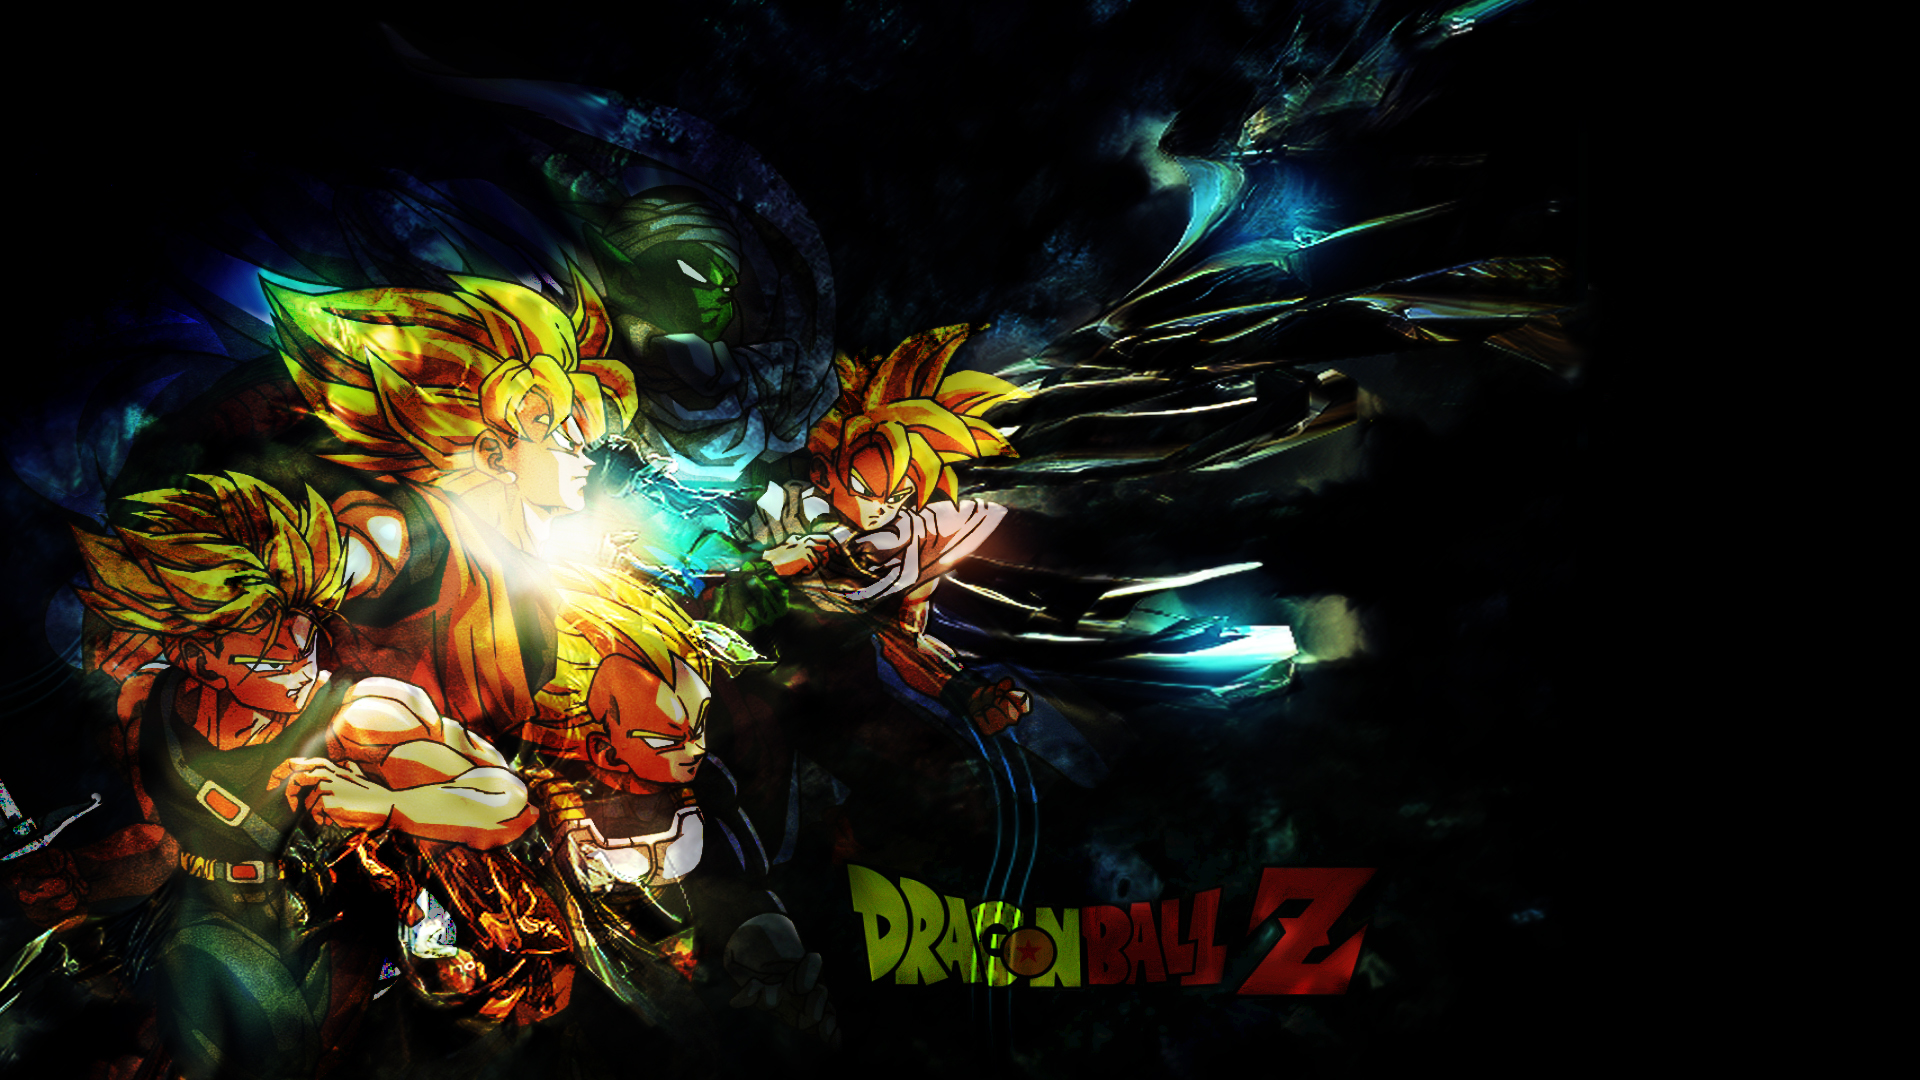 Dragon ball z hd backgrounds free download - 3d wallpaper of dragon ball z ...